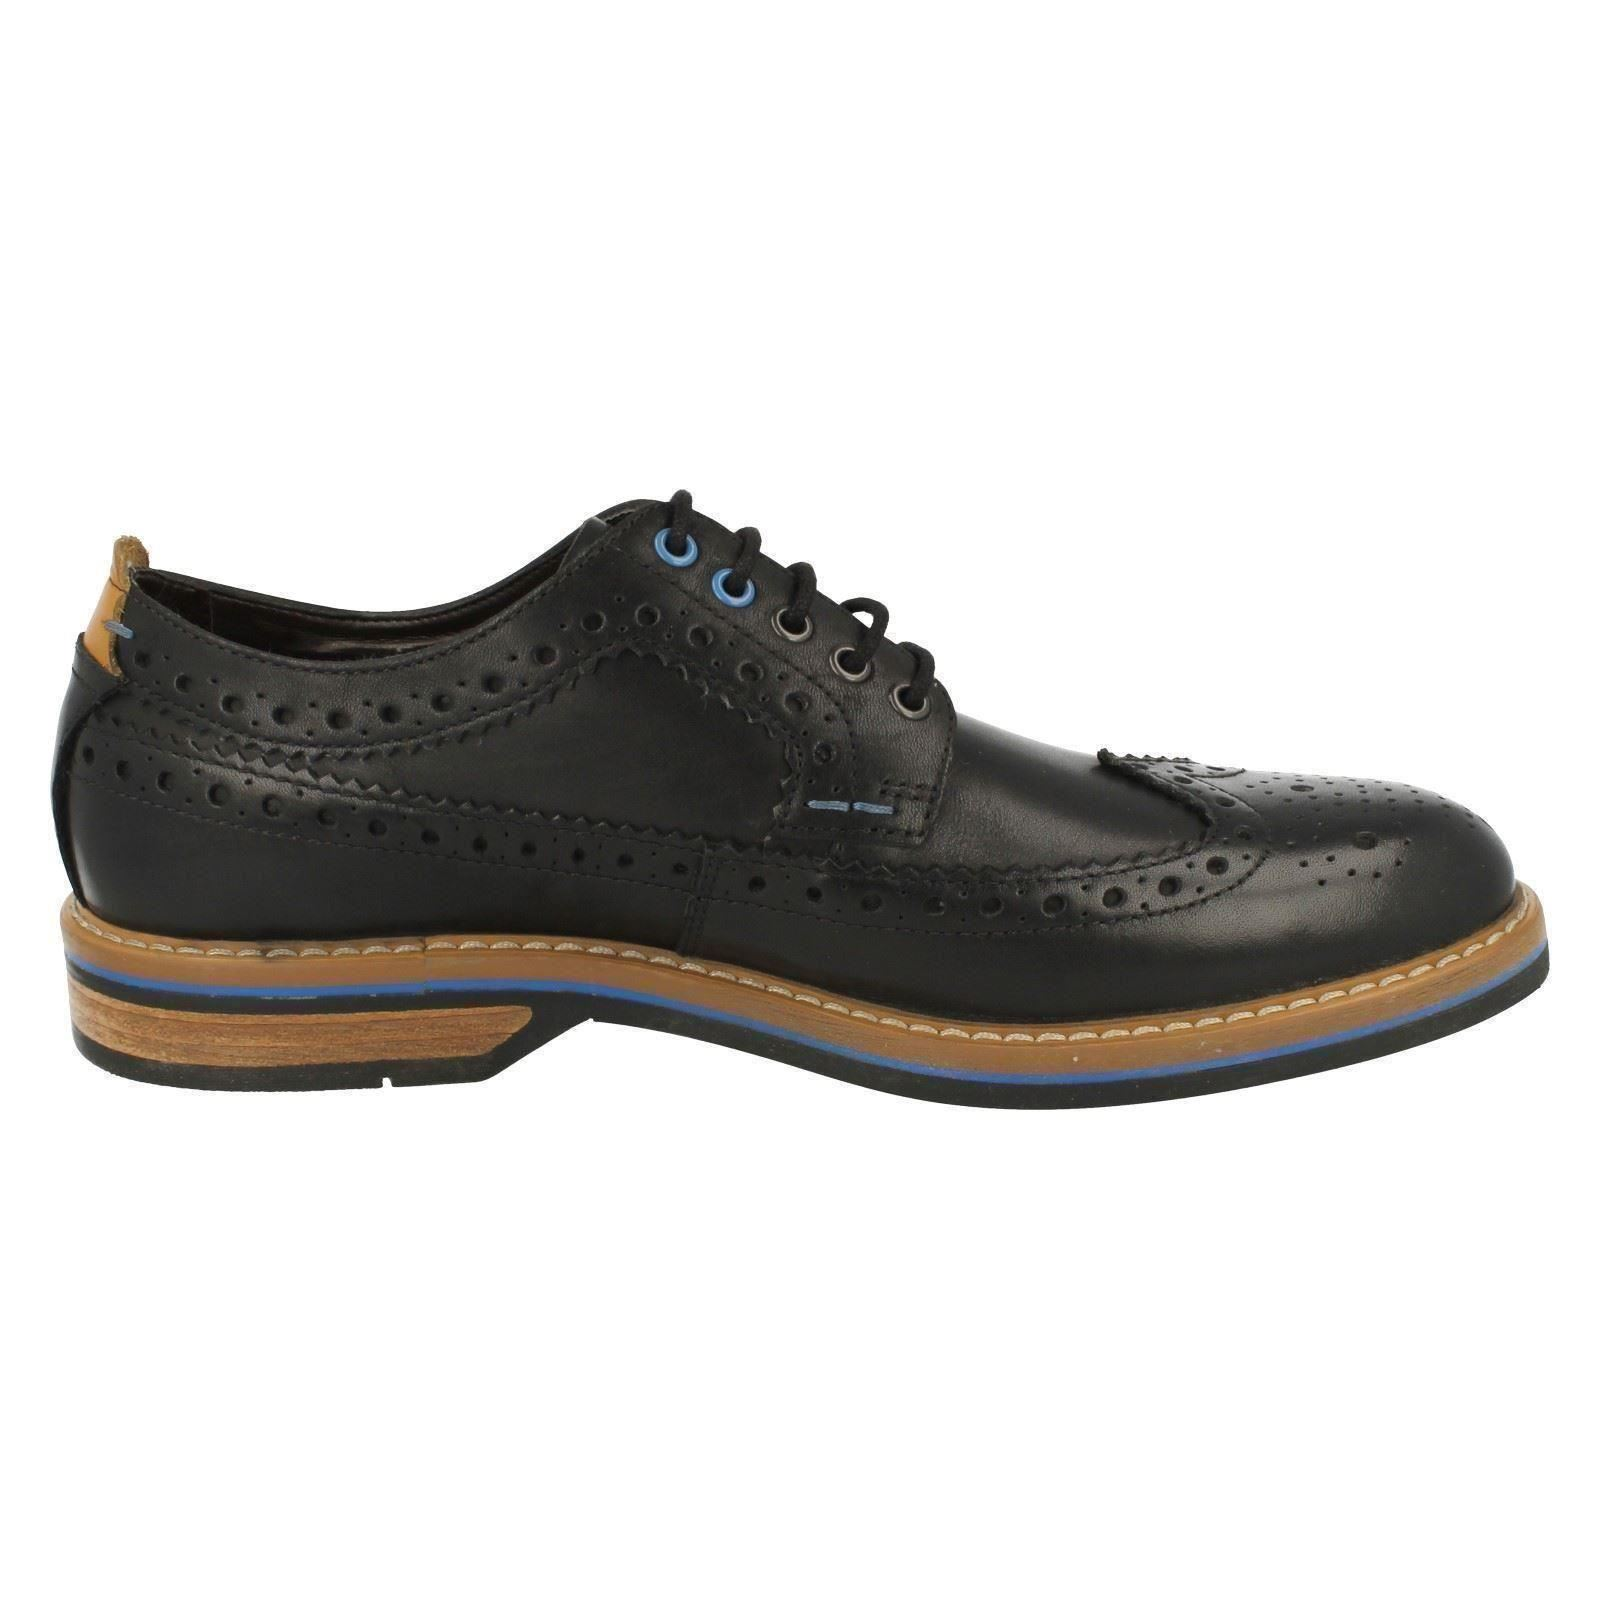 Herren Herren Herren Clarks Smart Casual Brogue Style Schuhes Pitney Limit 764a46